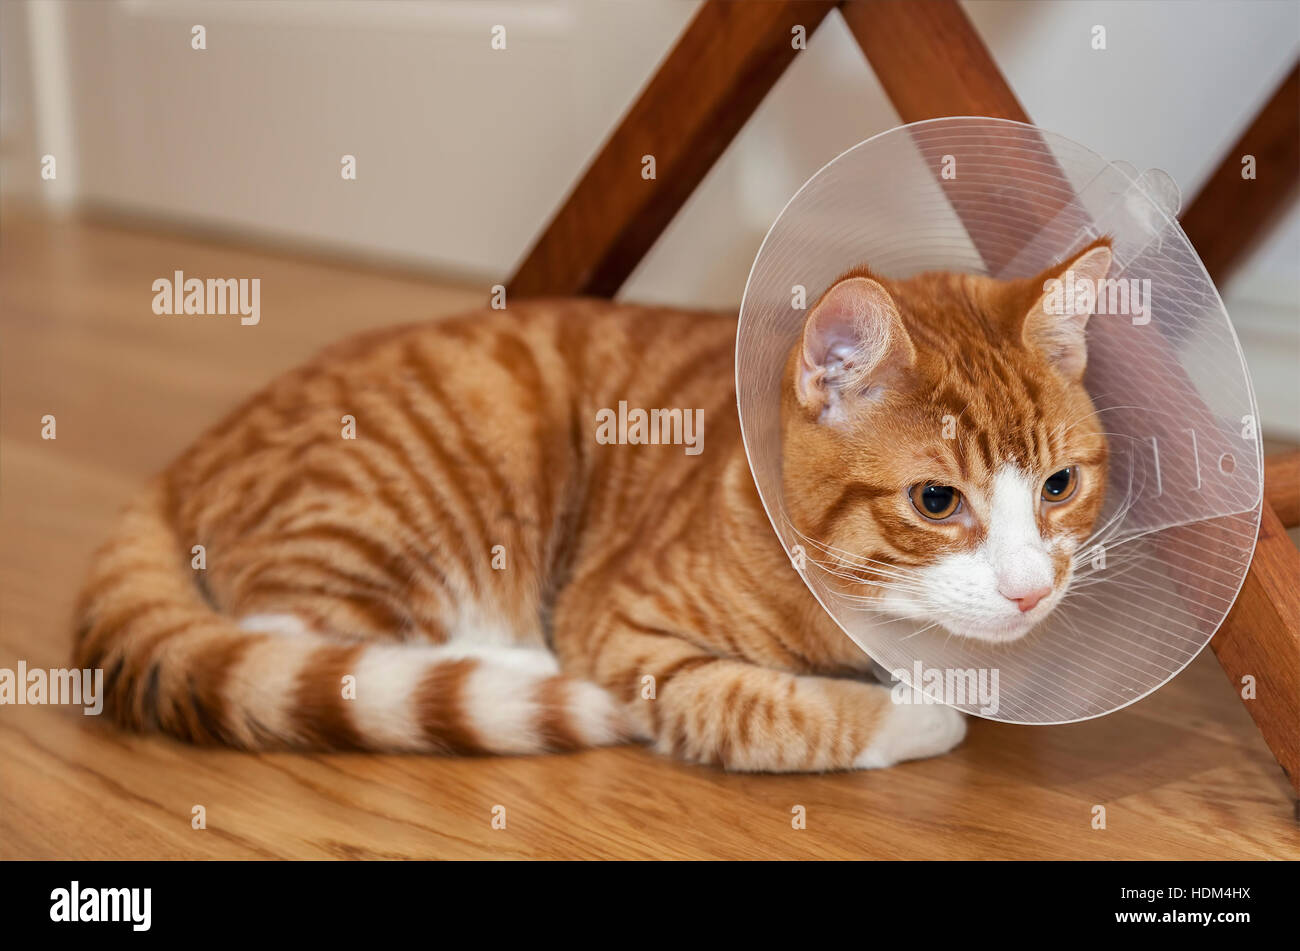 Image of ginger cat on the floor with cone. - Stock Image